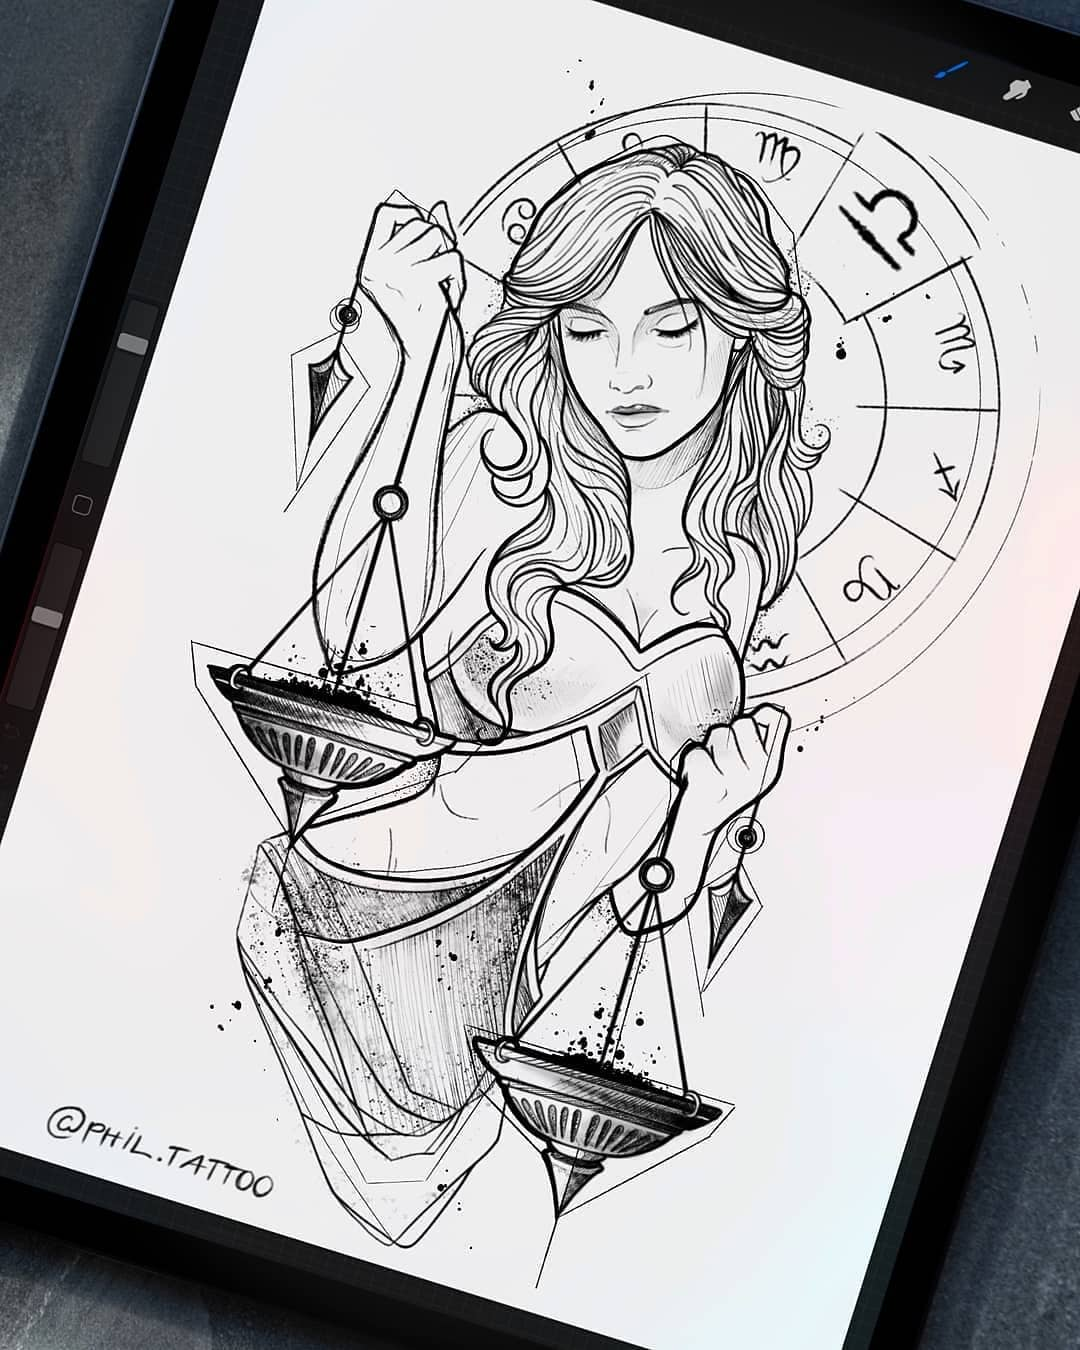 Sketch for tattoo, Libra girl on the theme of the signs of the zodiac